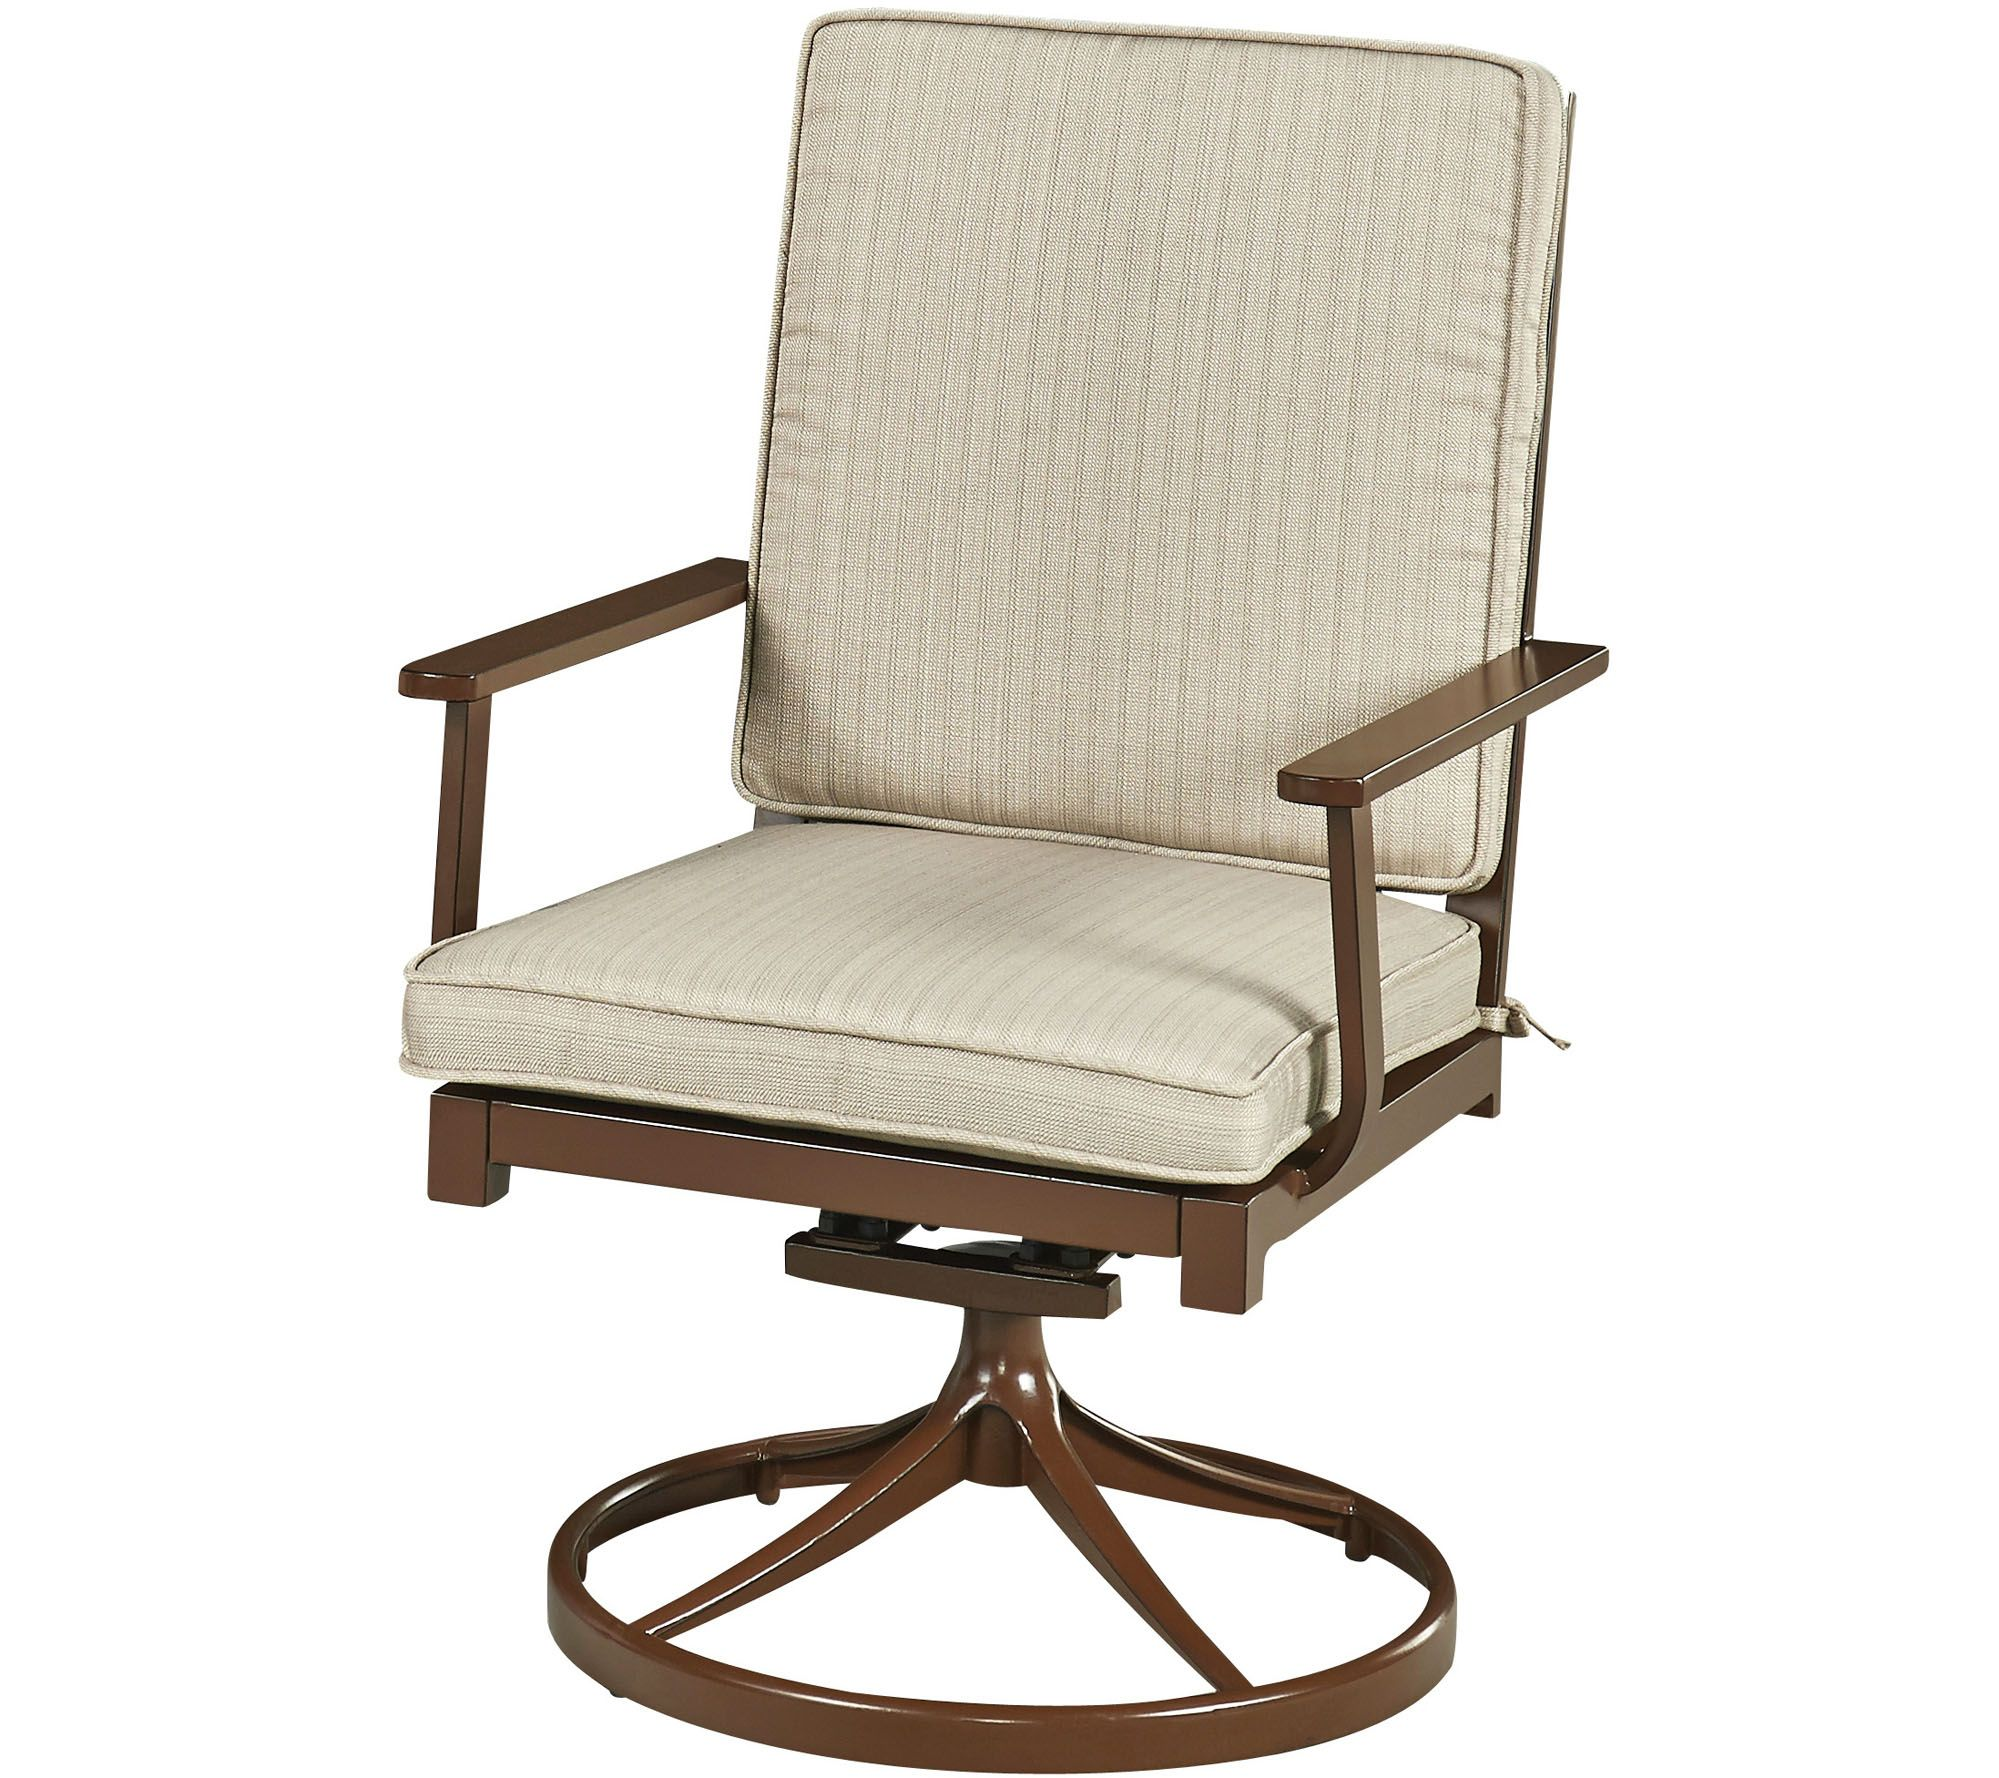 key west chairs bouncy for babies mamas and papas swivel rocking chair  qvc